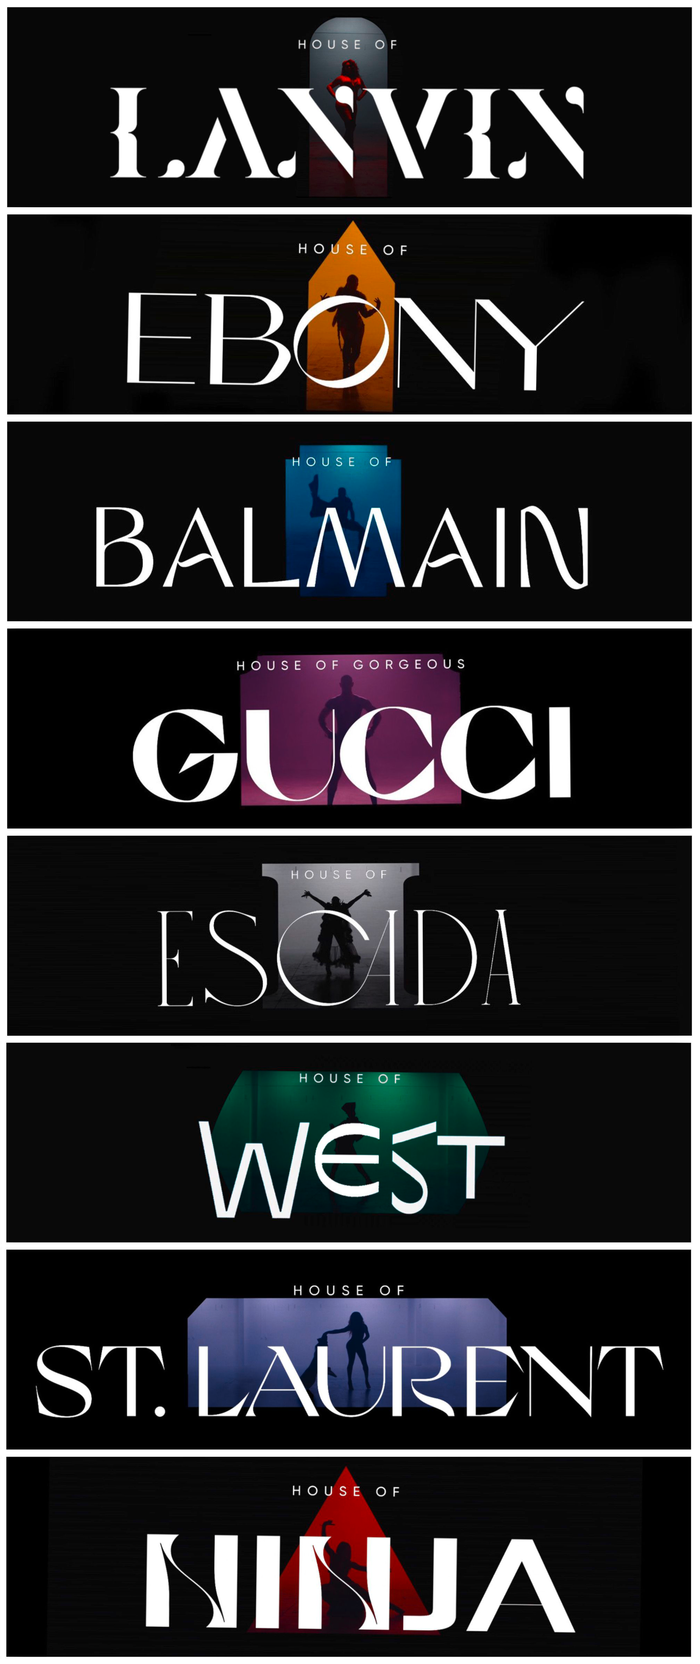 The contestants belong to eight houses, each of which has a typographic logo set in a different typeface, in all caps. From top to bottom: Lanvin (), Ebony (), Balmain (, identified by Jay), Gorgeous Gucci (), Escada (), West (), St. Laurent (), Ninja (, identified by Jay).